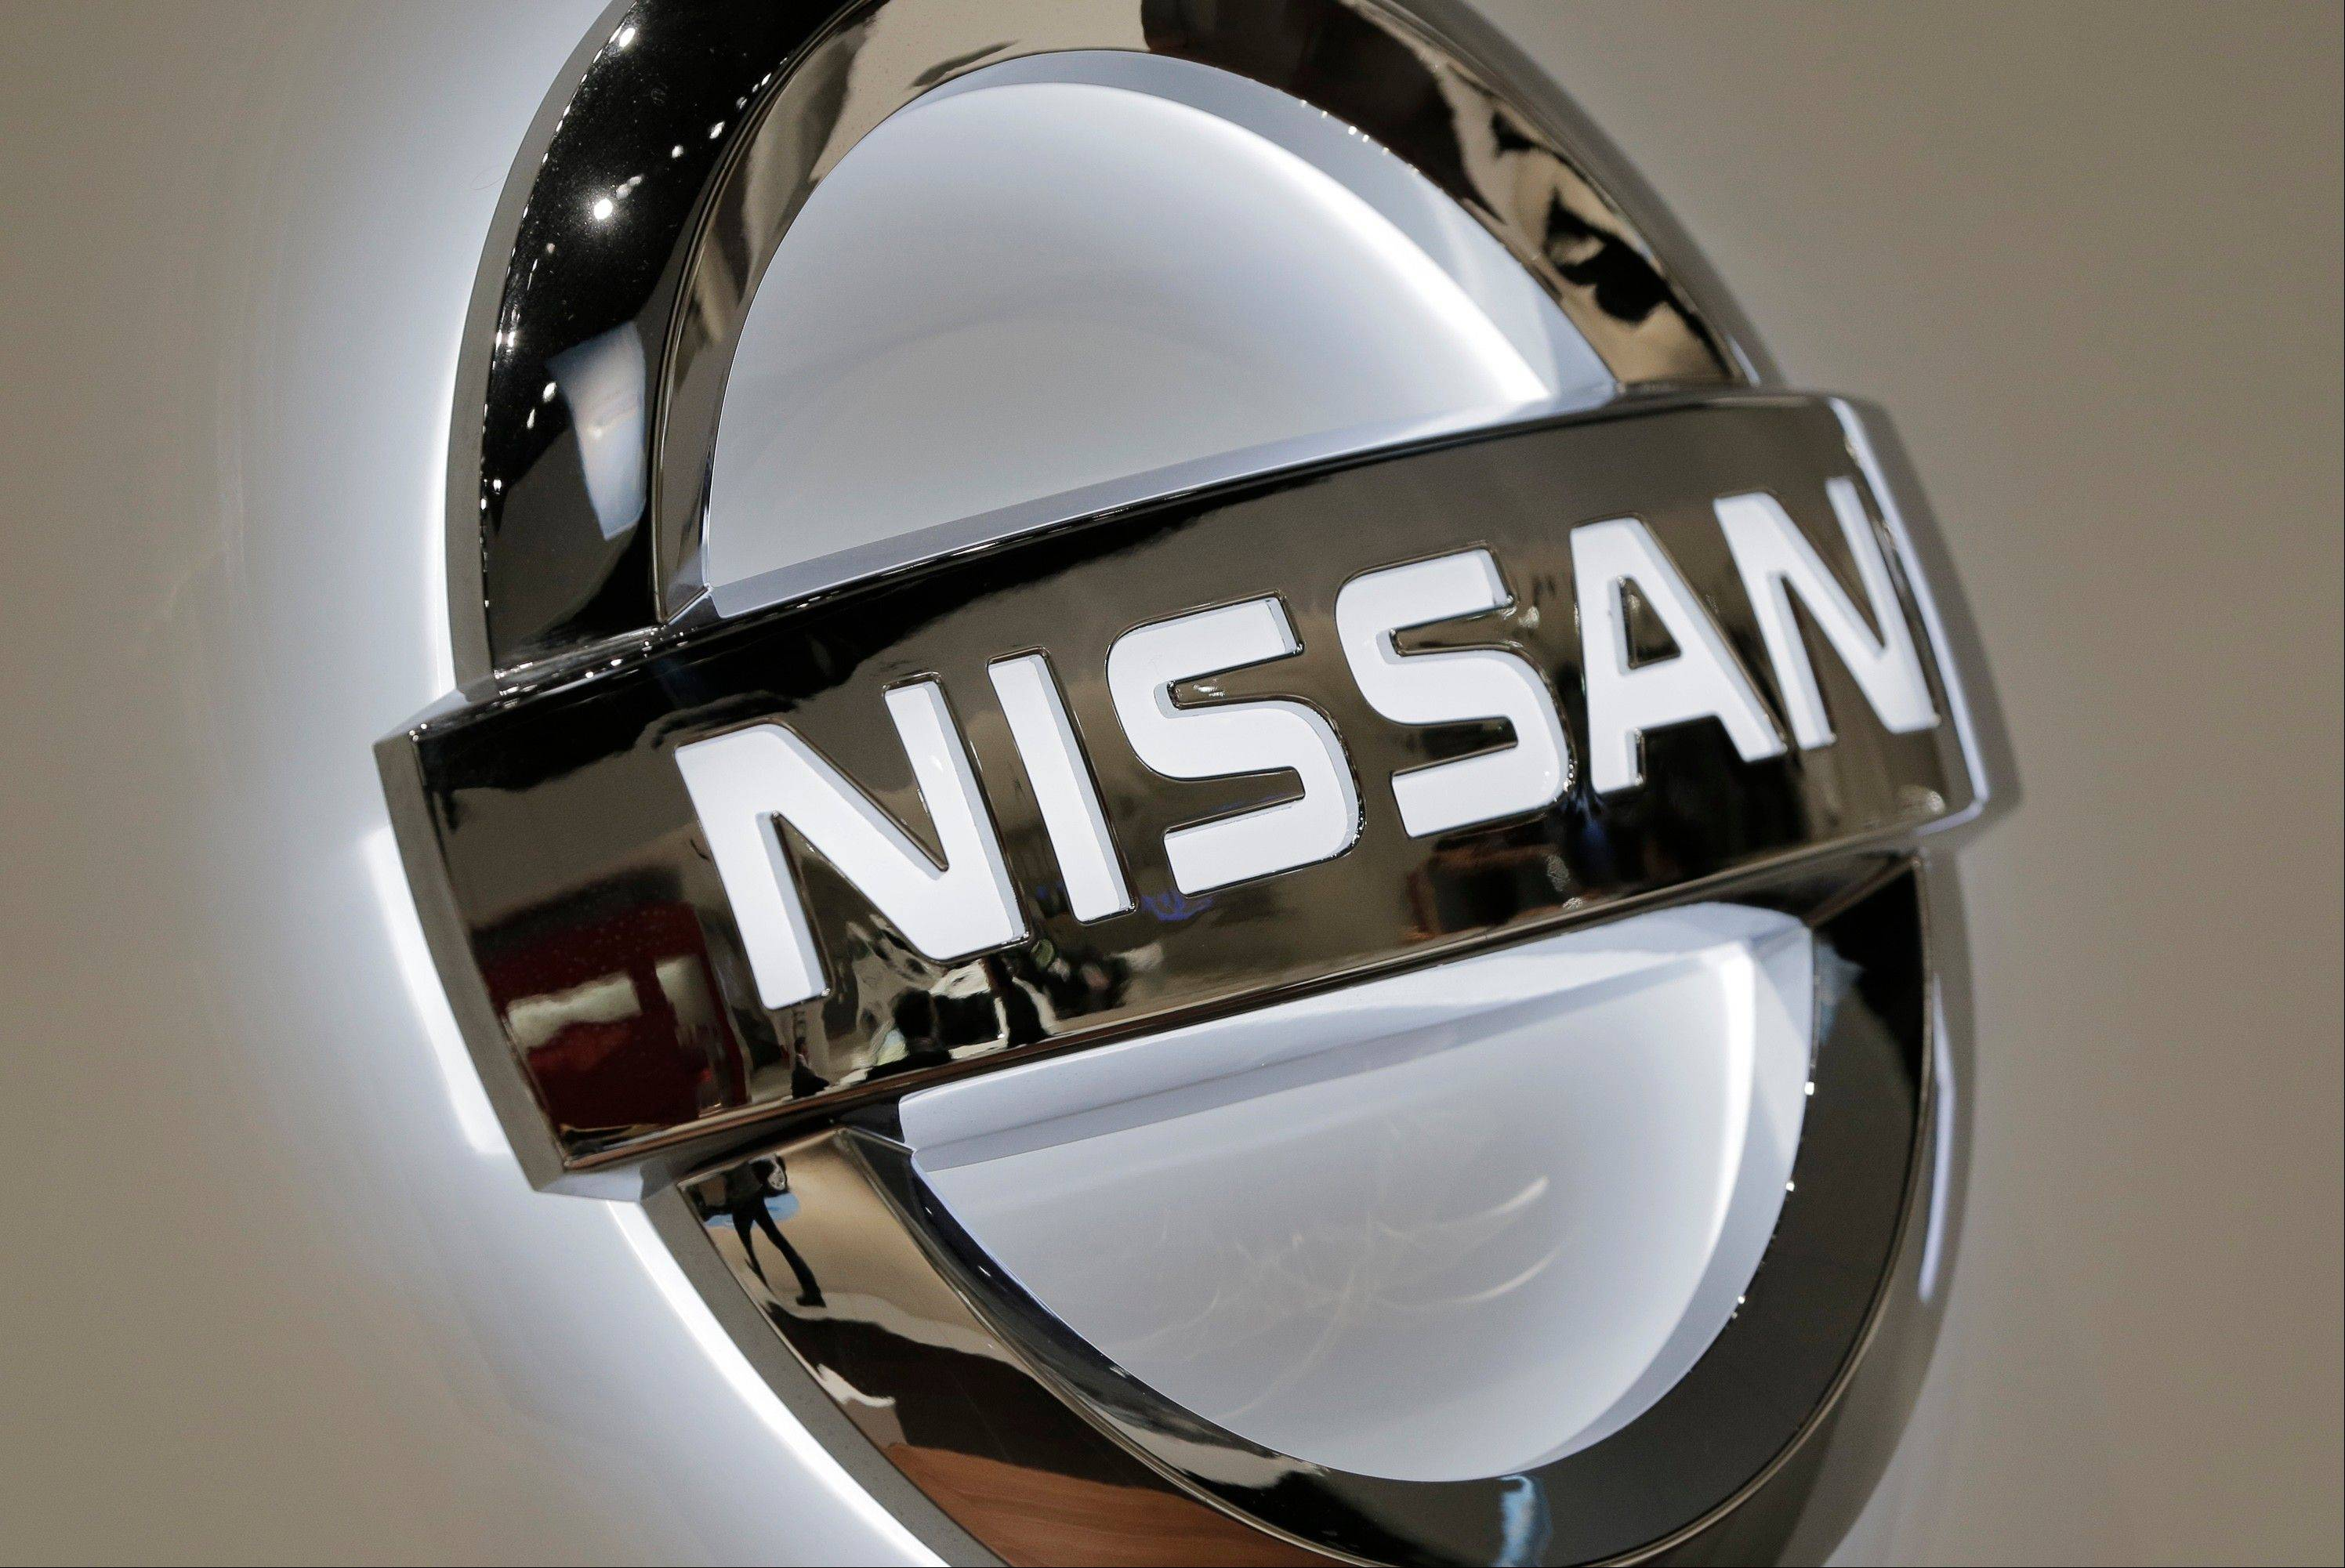 Nissan's quarterly profit rose nearly 8 percent, but the Japanese automaker lowered its full-year forecasts Tuesday because of a sales slump in China and weakness in Europe.